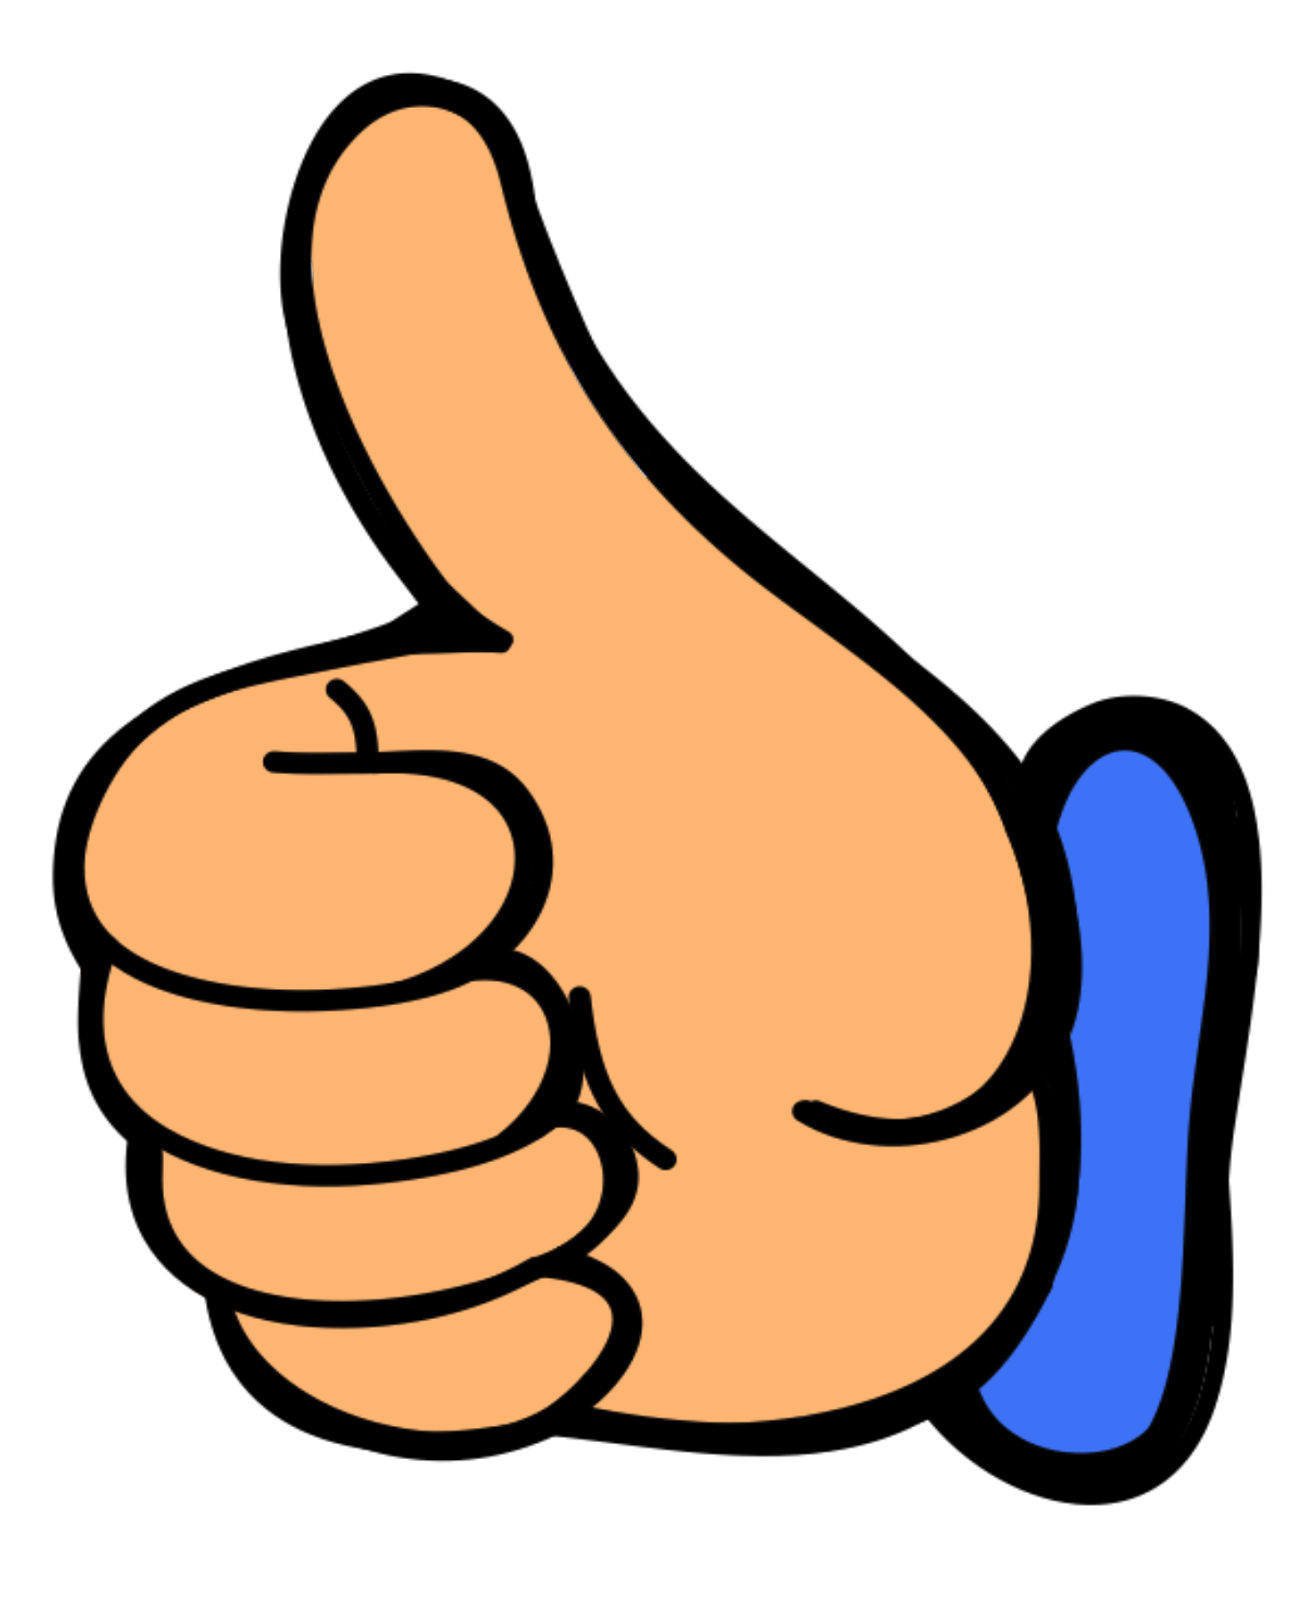 thumbs-up-i-get-it-6w0LkE-clipart.png